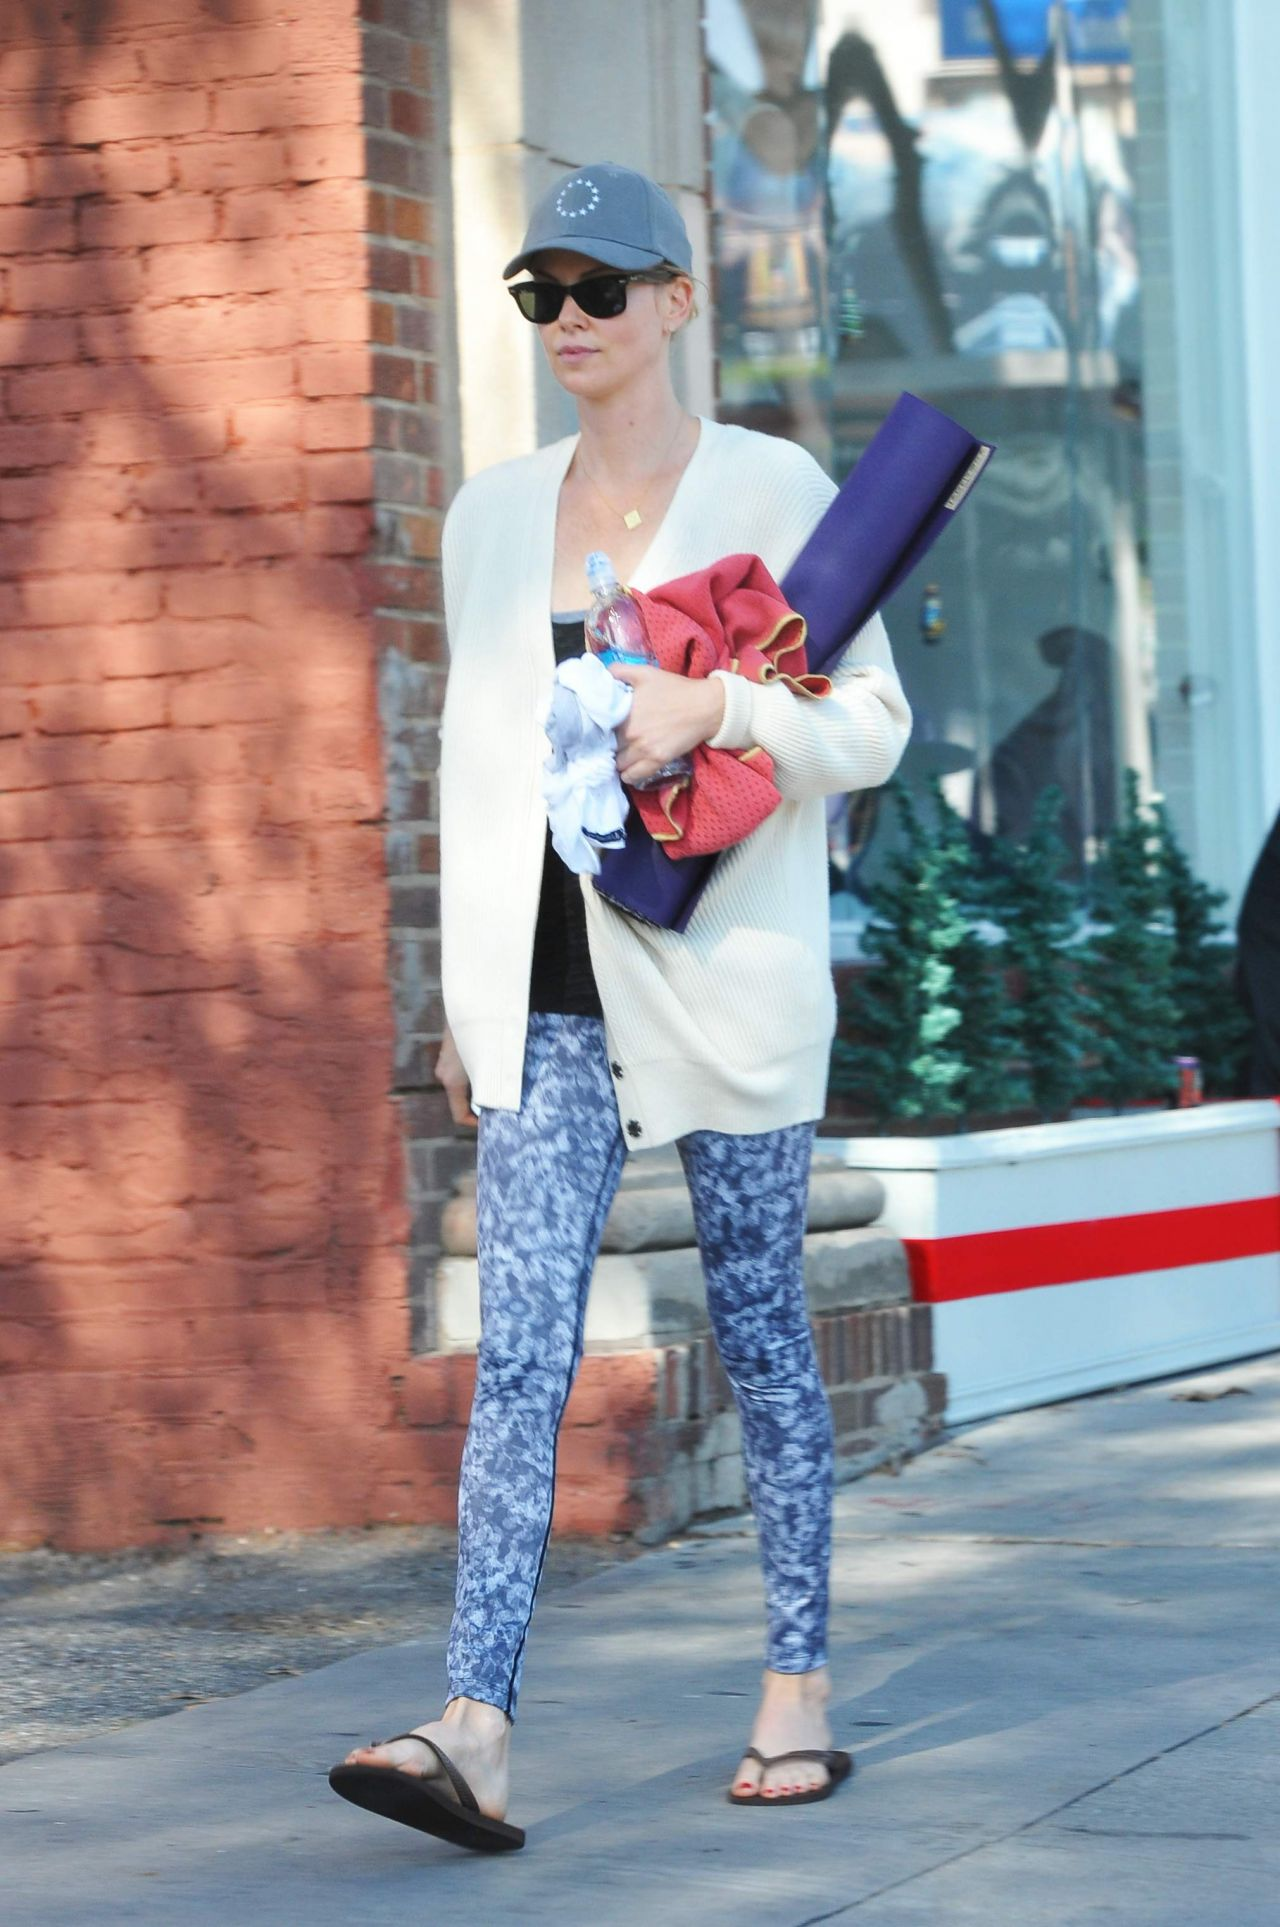 Charlize Theron - Leaves a Yoga Class After a Workout - December 2014